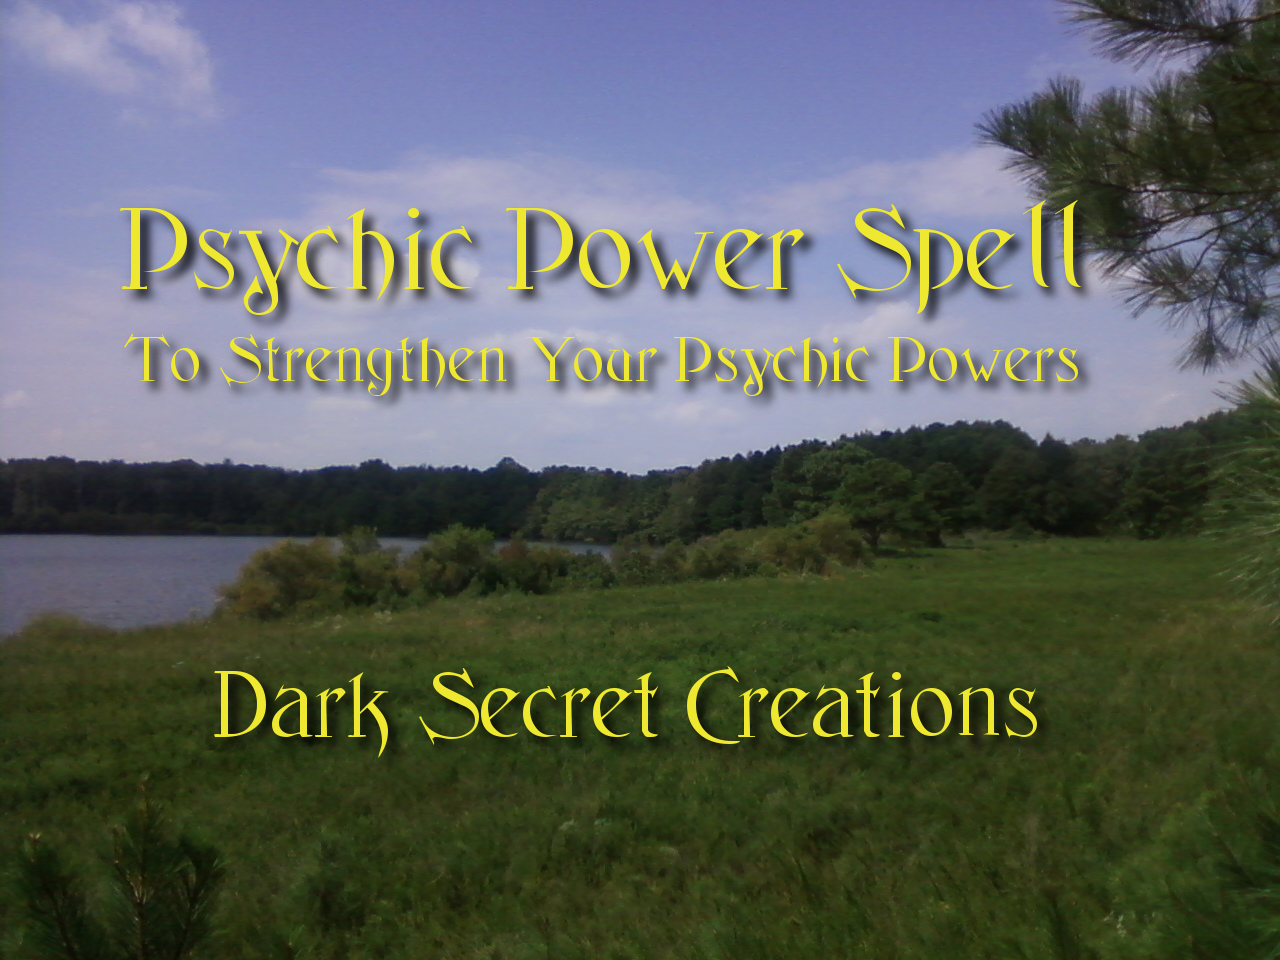 Psychic power spell